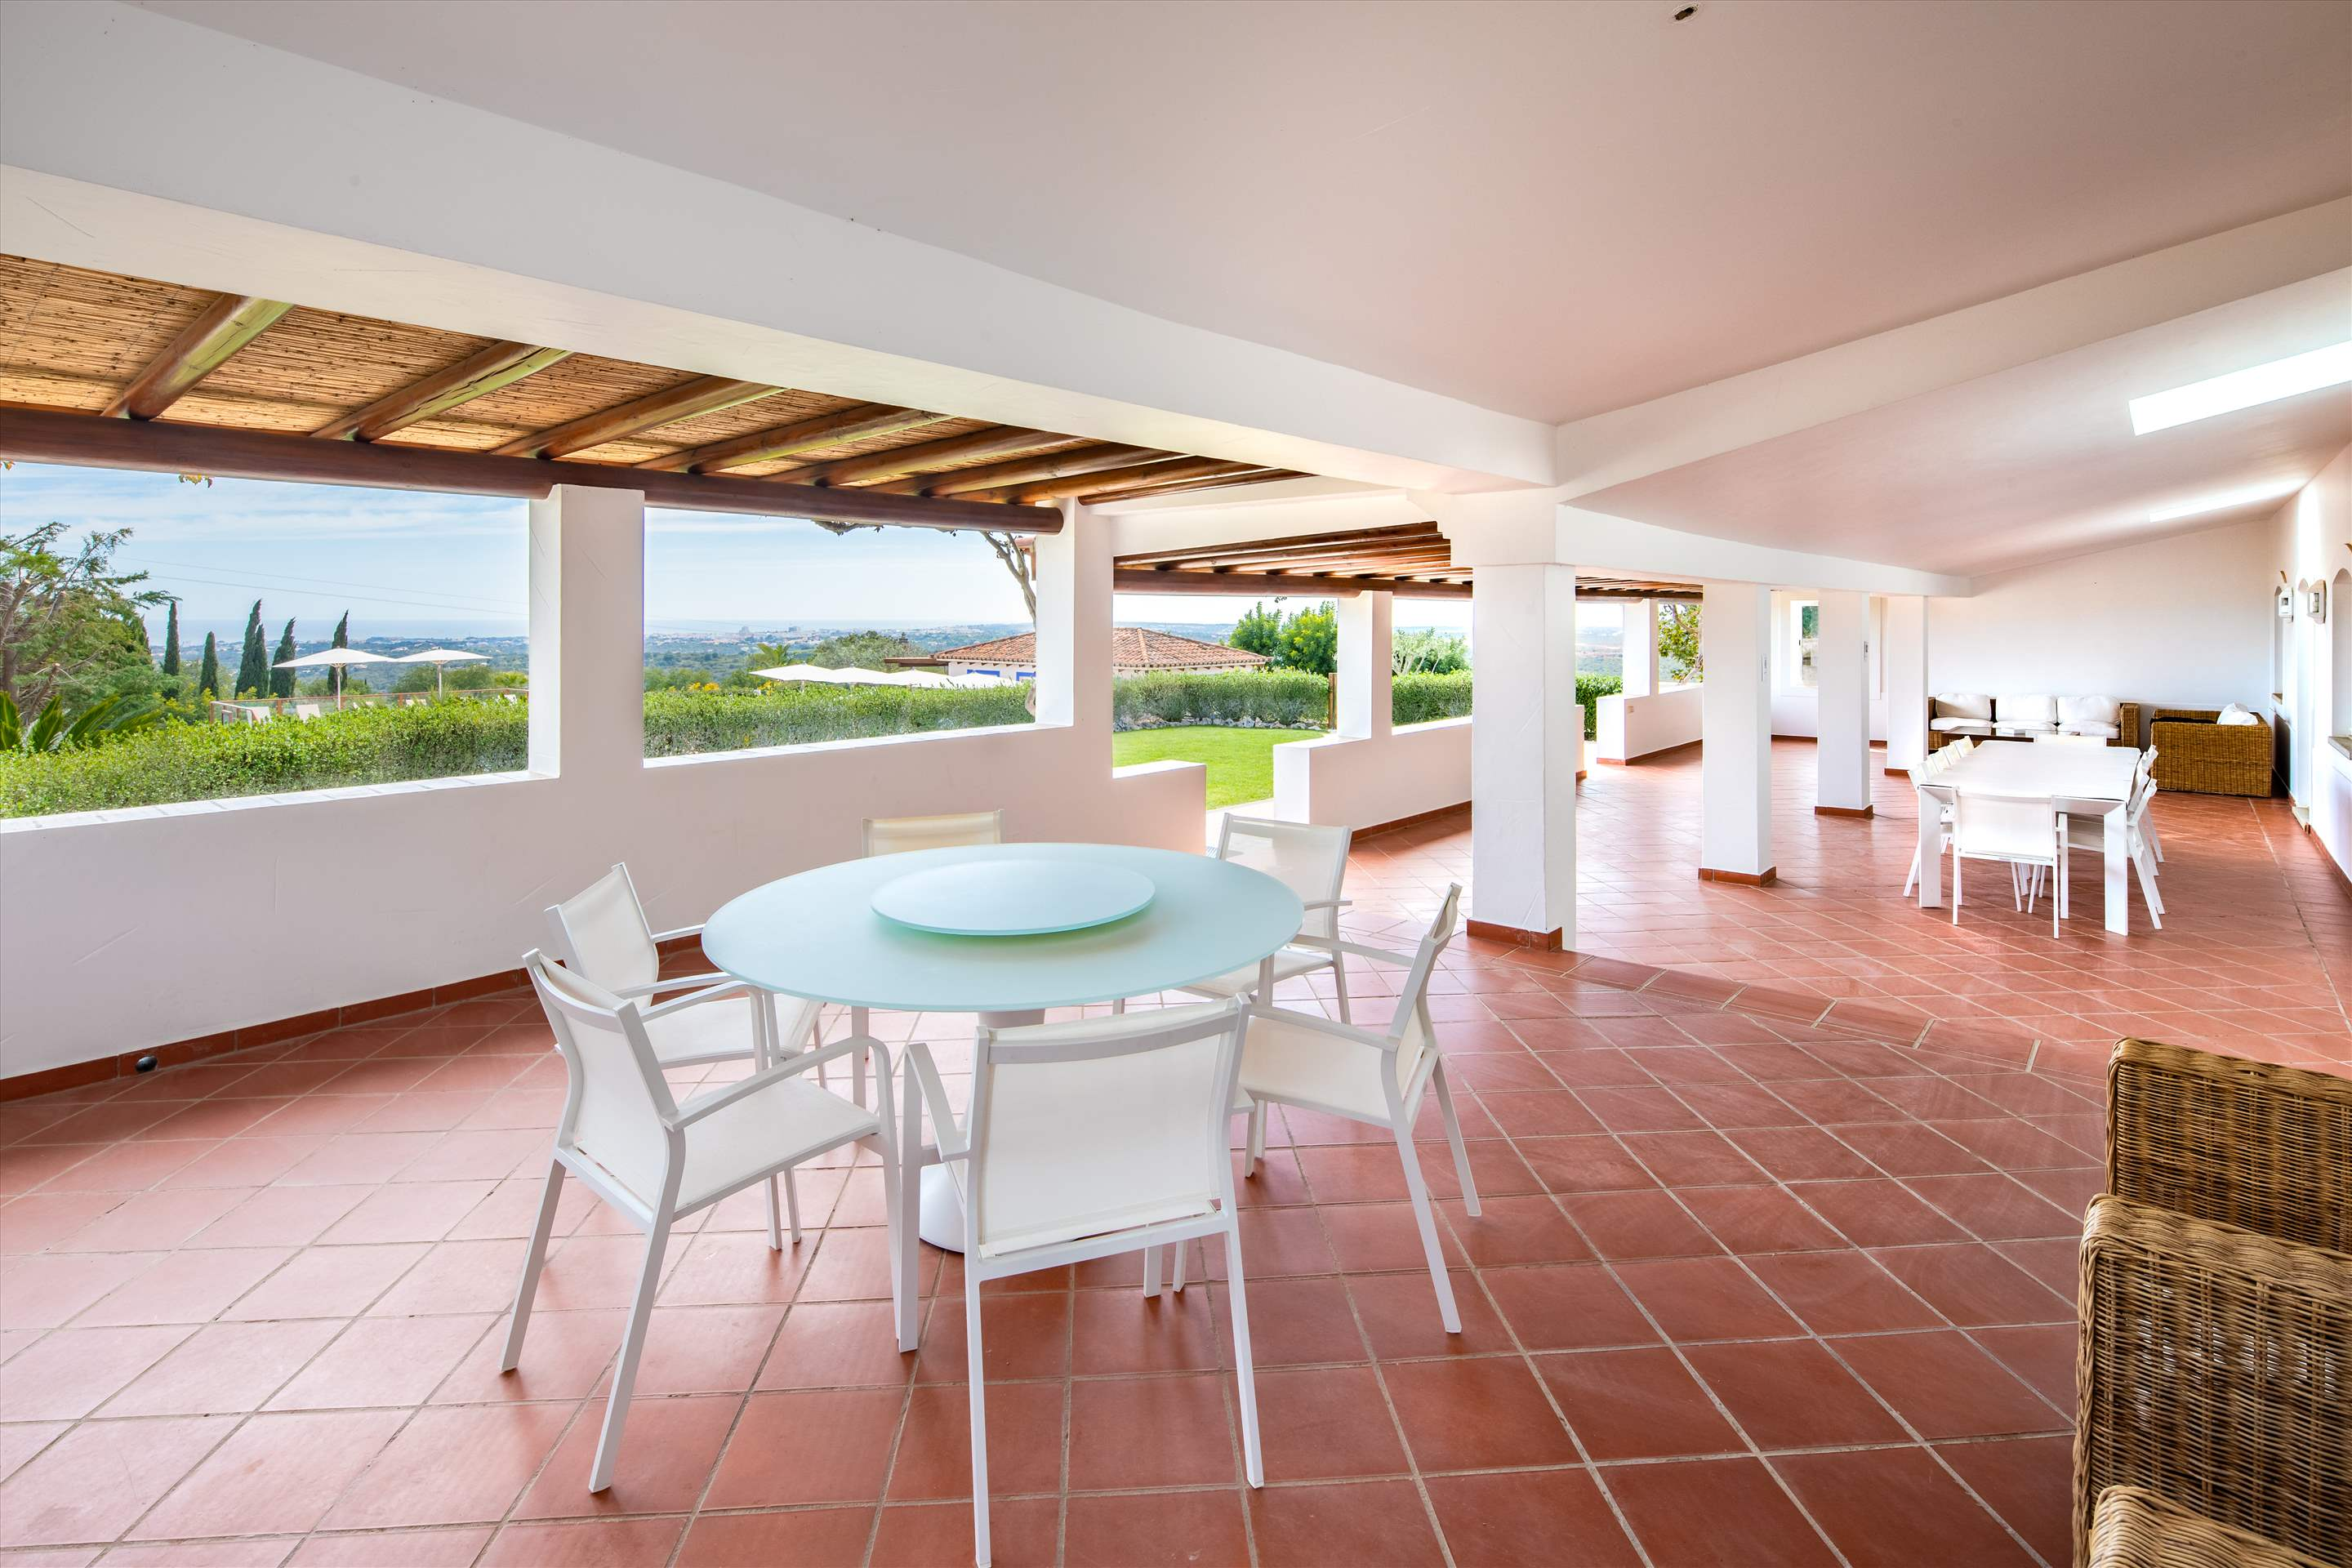 Casa da Montanha, 11-12 persons, 7 bedroom villa in Vilamoura Area, Algarve Photo #7